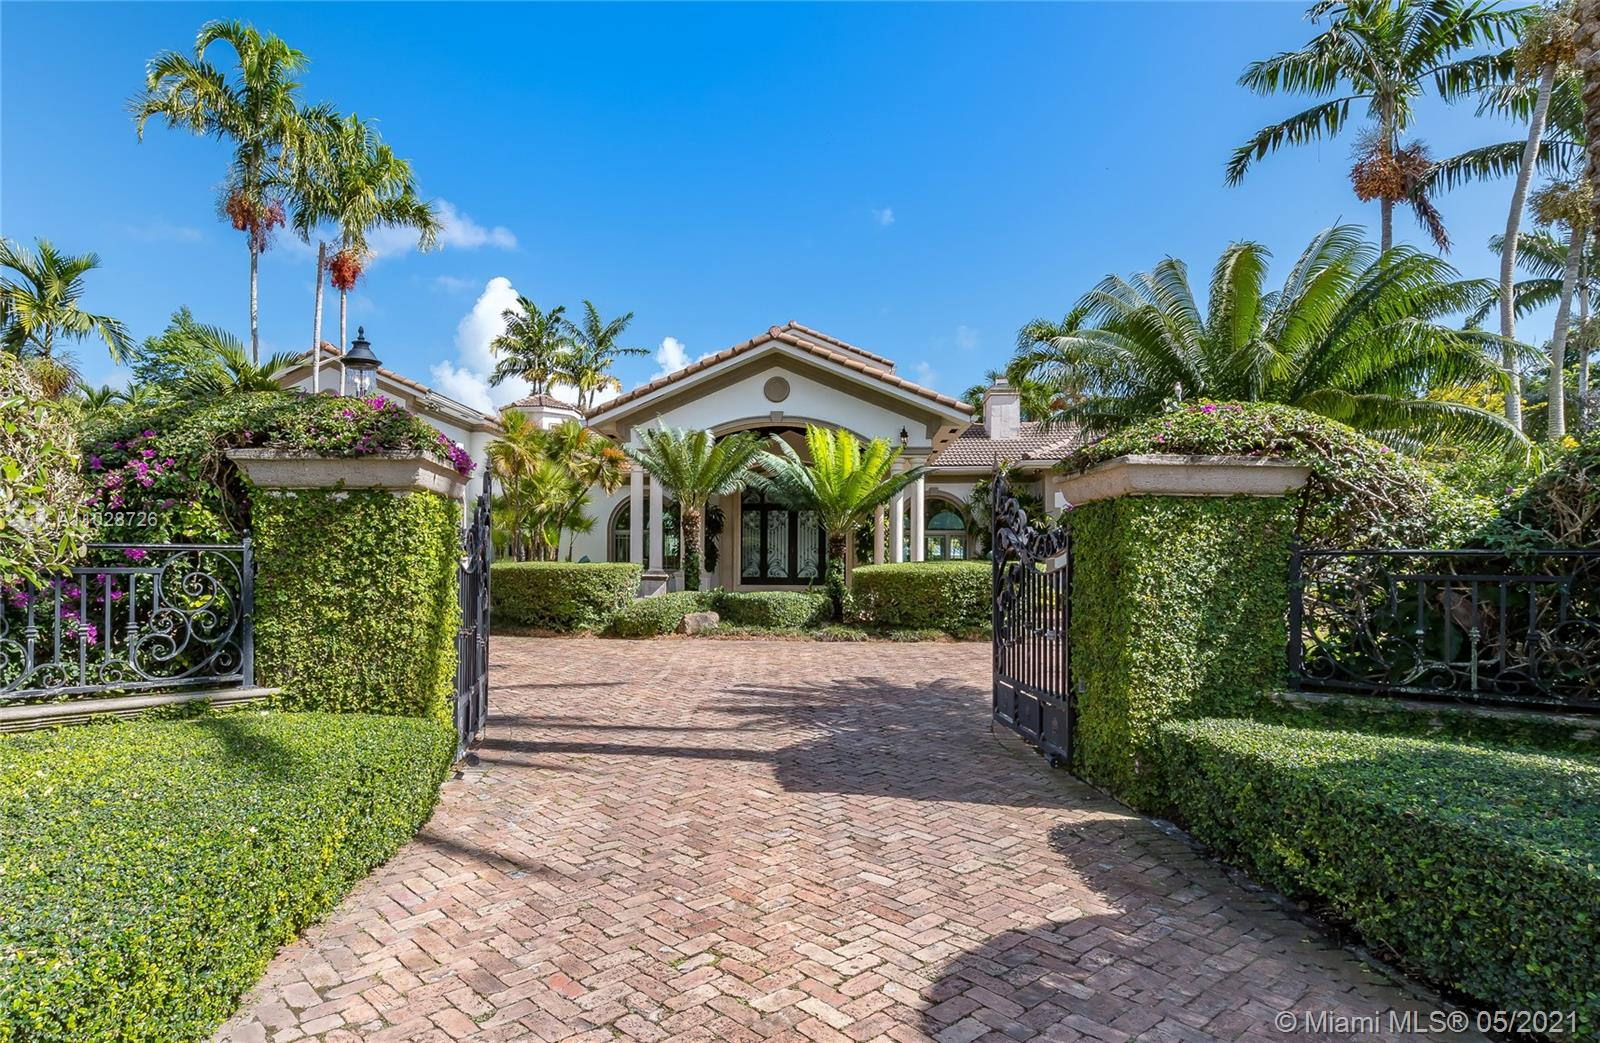 This spacious one story home located in N Pinecrest is privately gated & sits on 36,590 sqft of land. Front doors open to a beautiful view of the salt water/heated pool and backyard with large entertaining spaces and state of the art summer kitchen, surrounded by pristine & lush landscaping.  Enjoy marble floors and wood paneling throughout formal and informal living room plus dining and wood floors throughout the 6 beds/6.5-baths house, as well as high vaulted ceilings, high impact windows, recessed lighting, a fireplace, and a maid's quarter. The Master suite offers a sitting area as well as oversized closets and large bathroom/sauna with his and her sinks. Bright, open kitchen features top appliances such as Miele and Sub Zero. 3 car garage. Near top ranked schools, marinas and more!